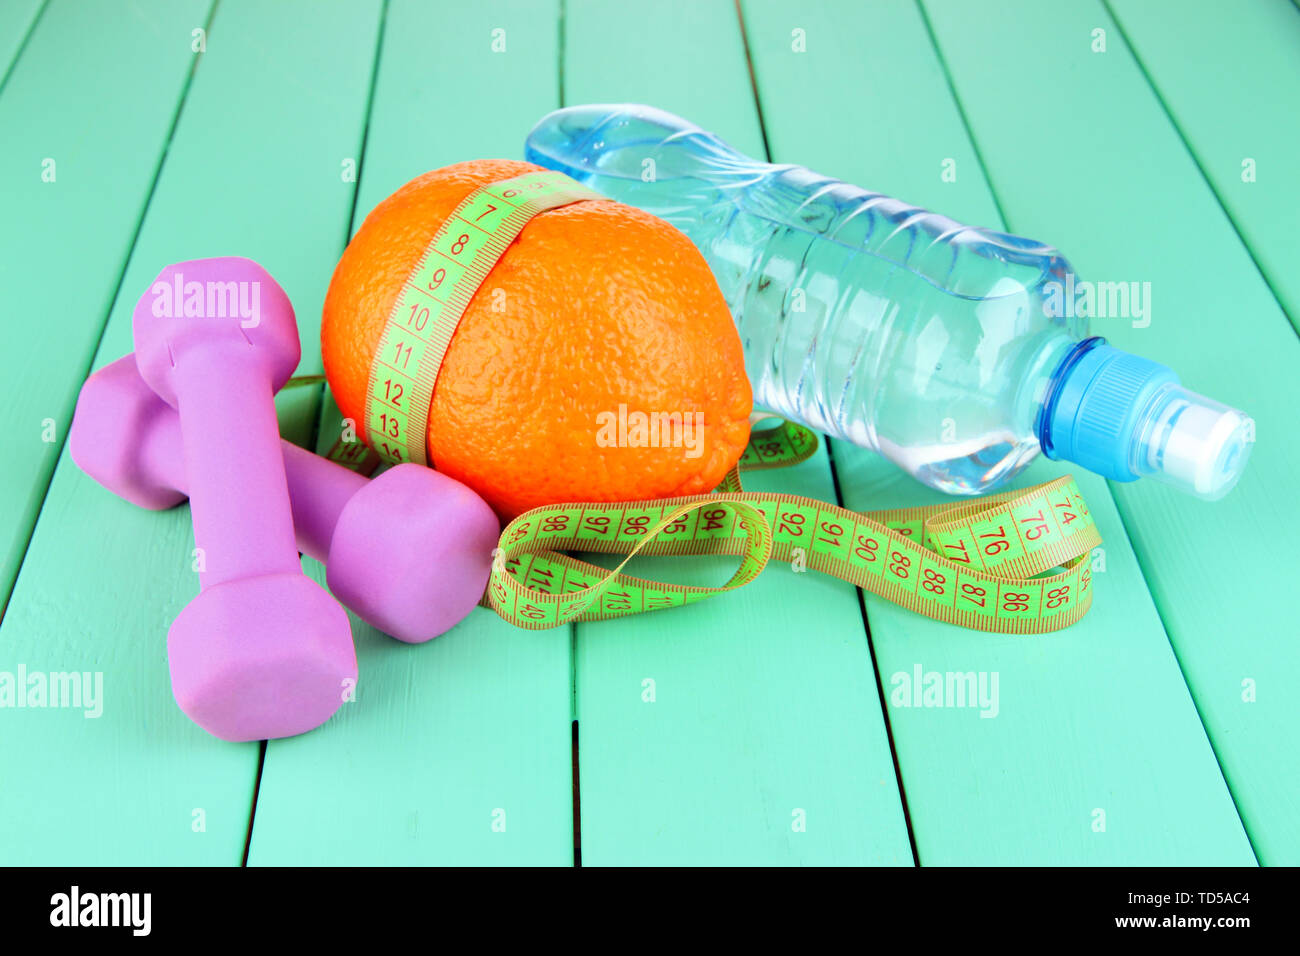 Orange with measuring tape, dumbbells and bottle of water, on color wooden background - Stock Image